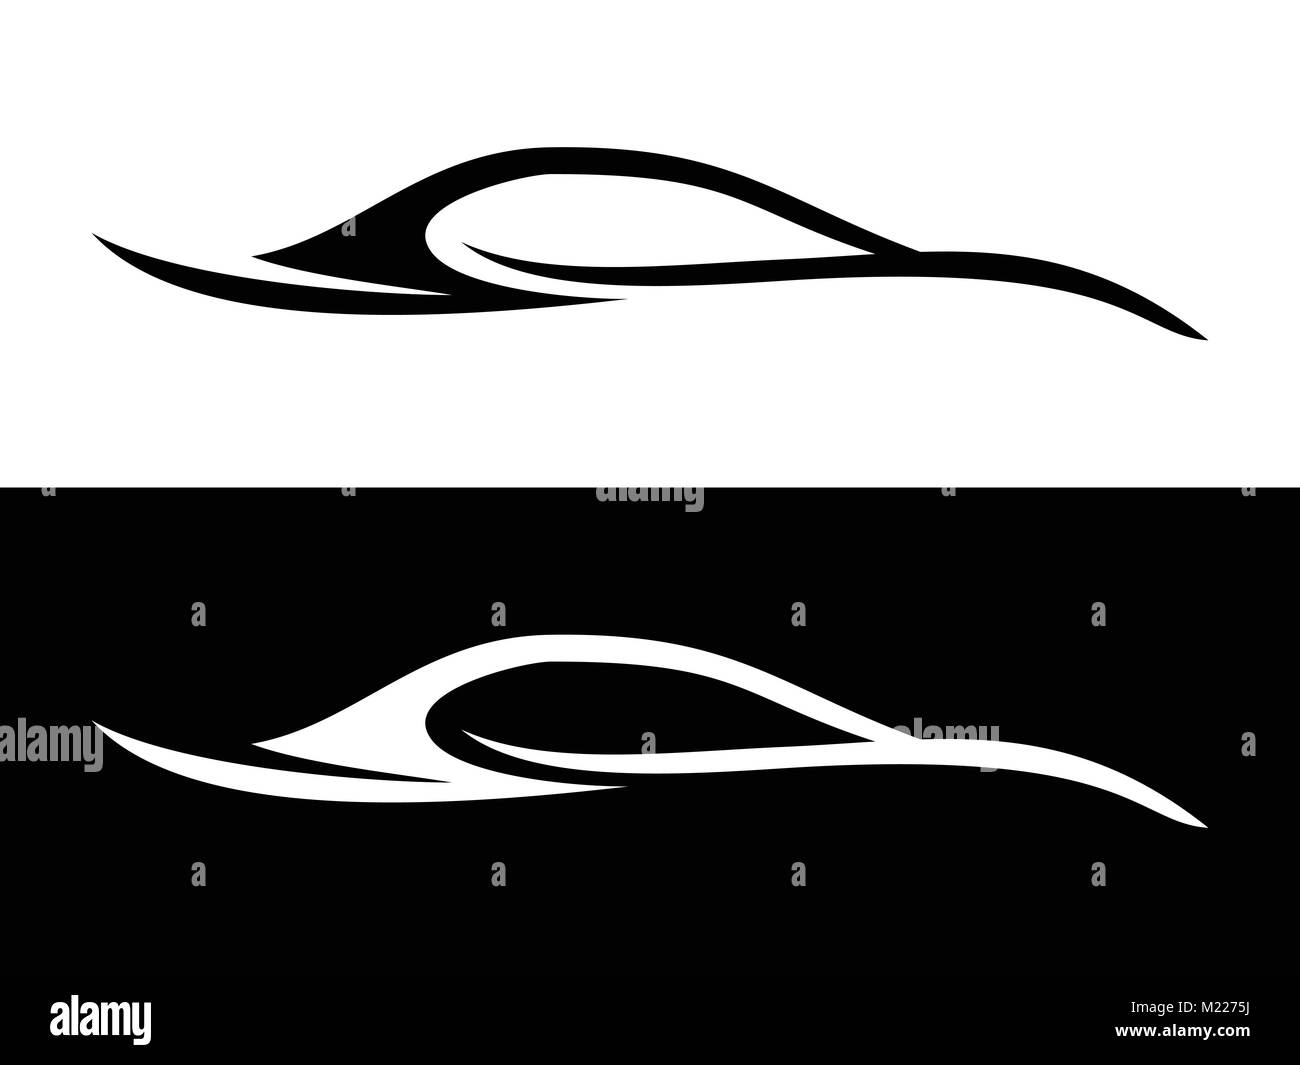 Abstract Car Shape Black and White Symbol Vector Graphic Logo Design - Stock Image